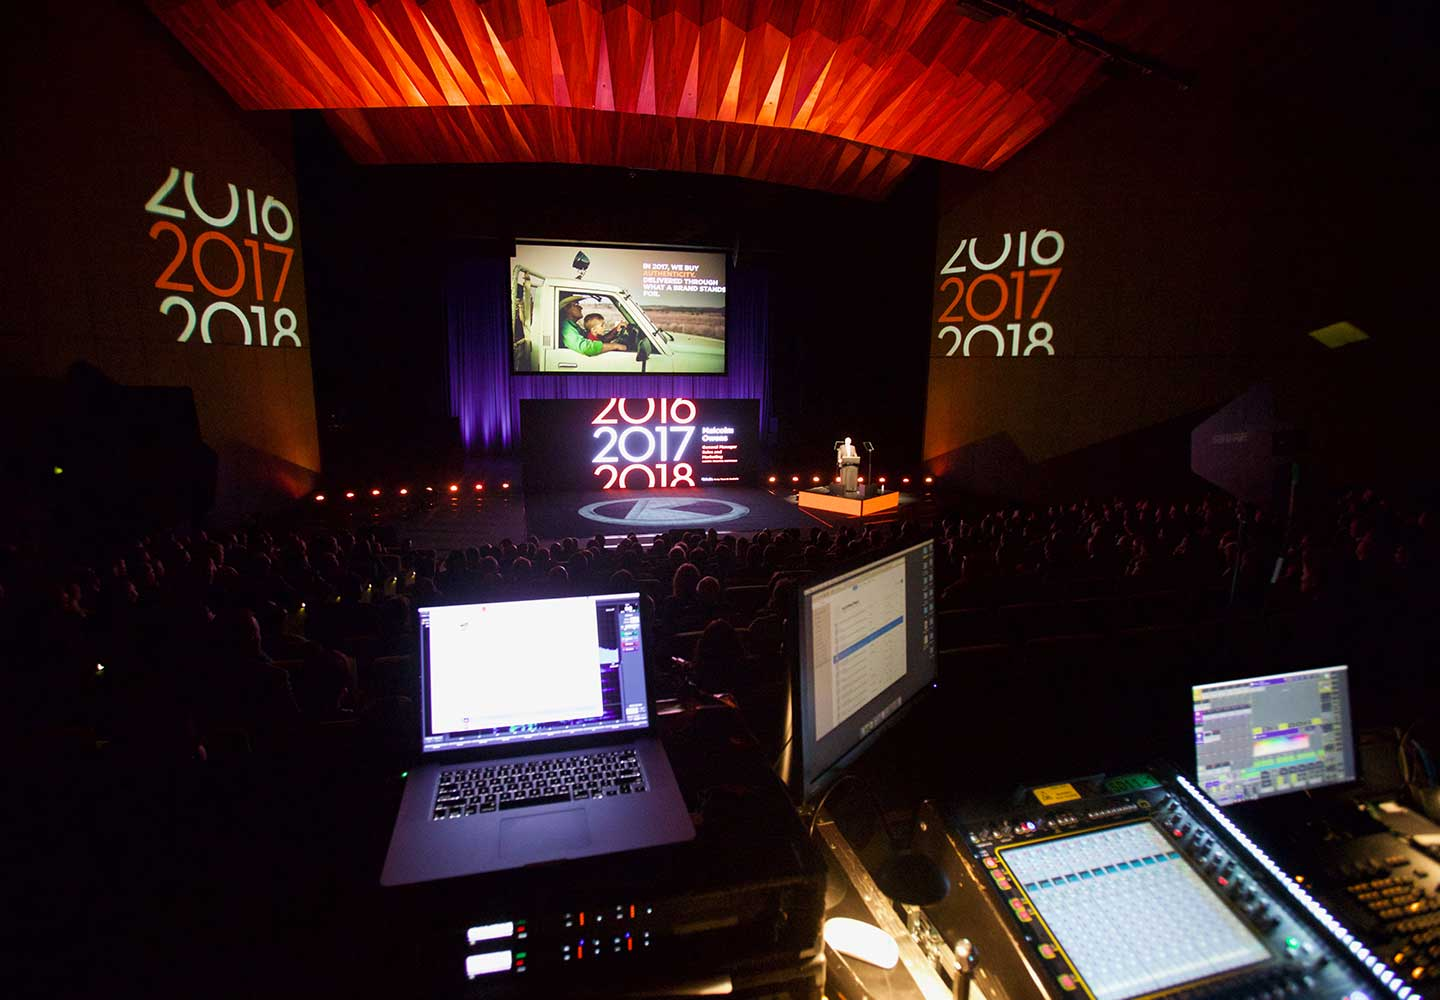 We supply and coordinate high-end professional AV equipment for short and long-term hire. Our extensive inventory across audio, visual, staging and lighting, coupled with our technical expertise will ensure you have the right AV solution for every event, every time.